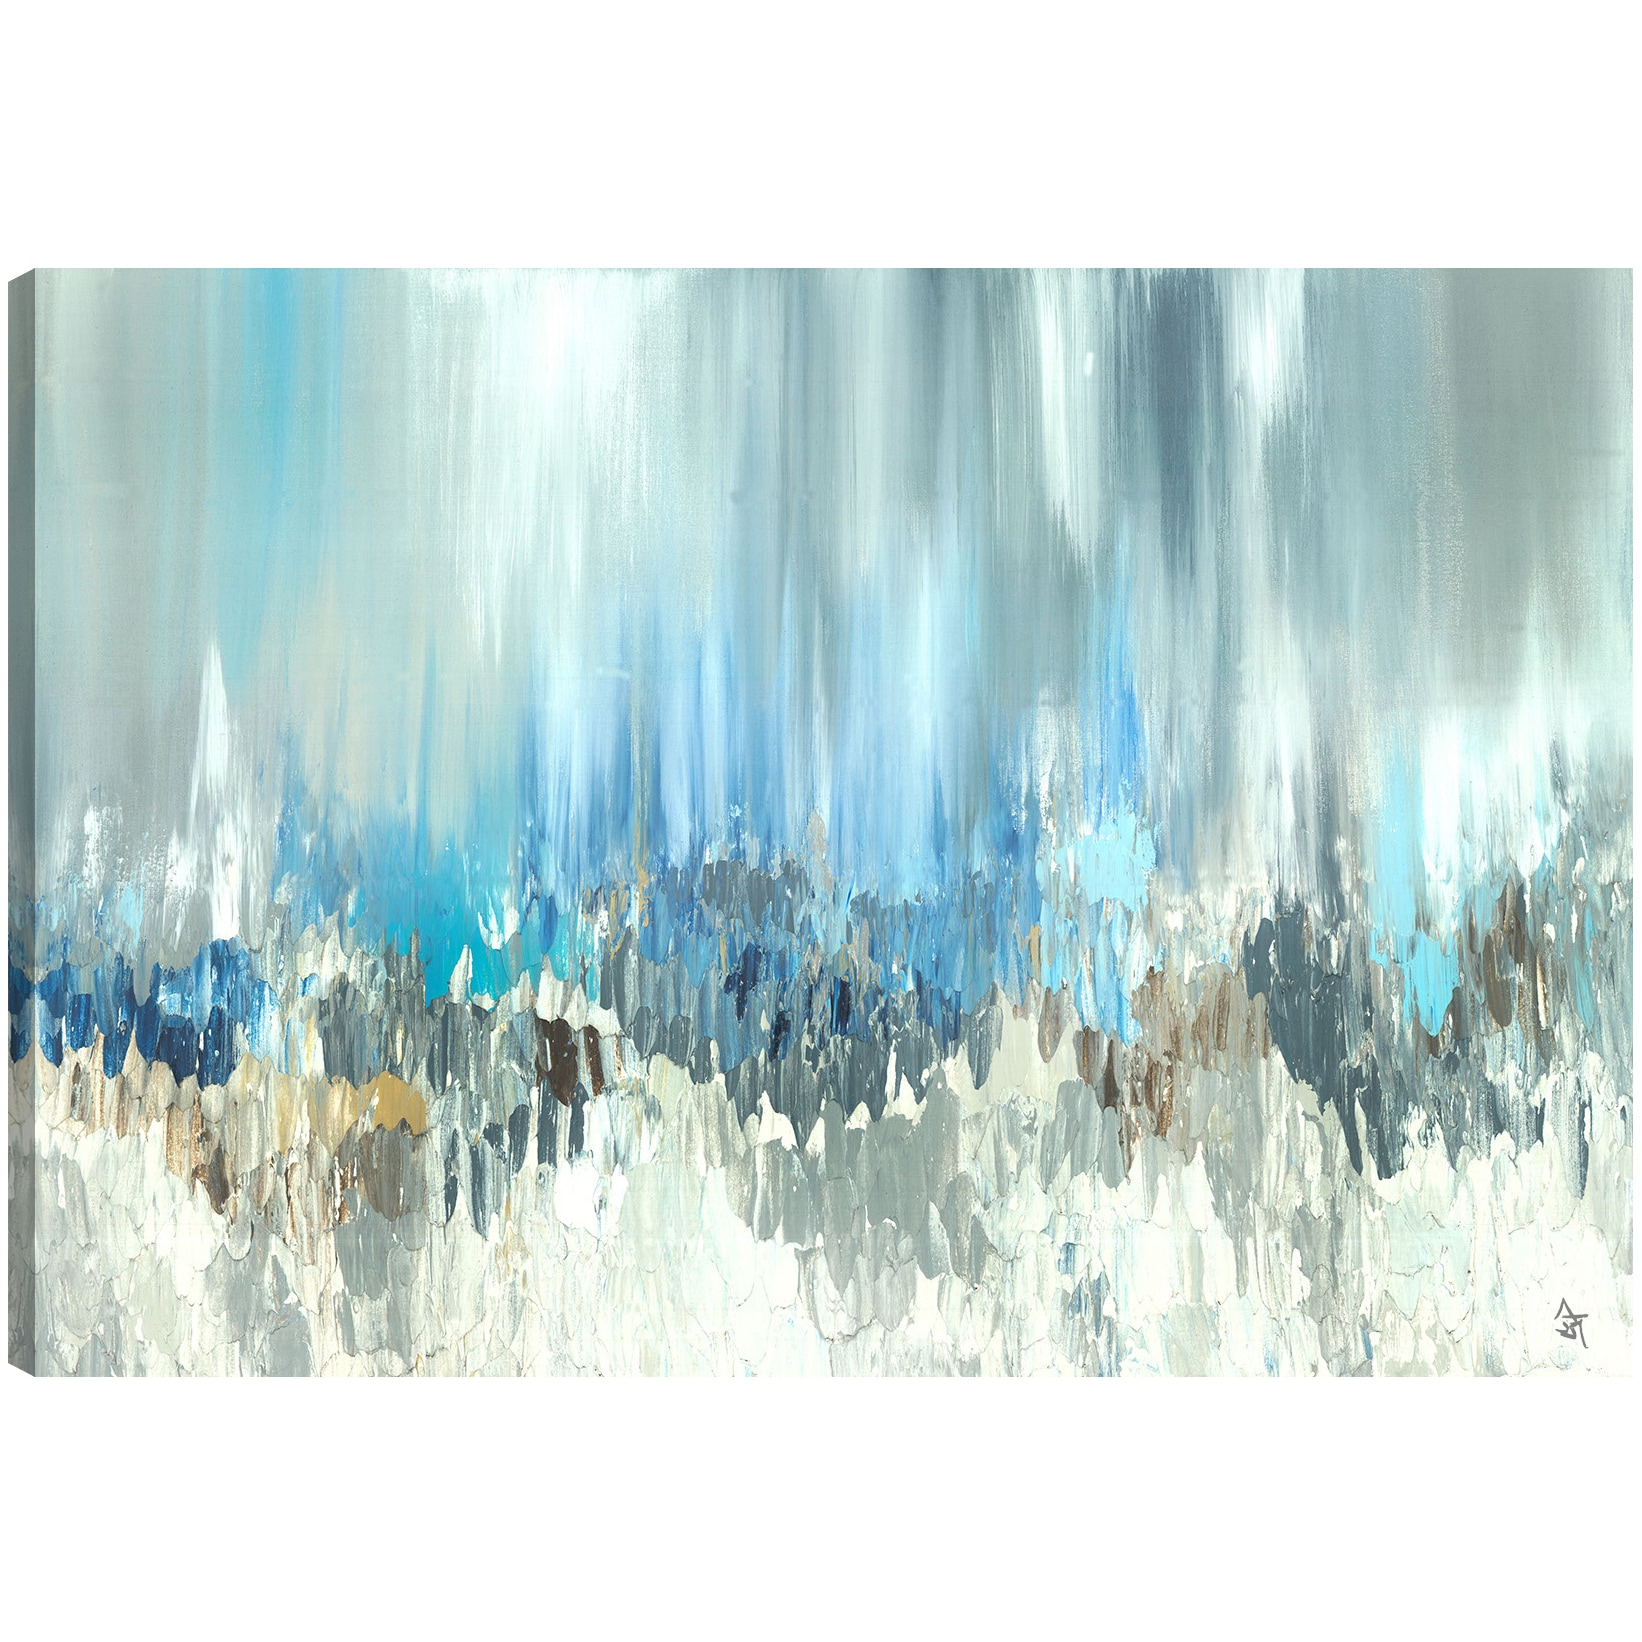 Artmaison Canada Sanjay Patel Blue Visuals Abstract Canvas Print Canvas Wall Art Decor Gallery Wrapped 30x40